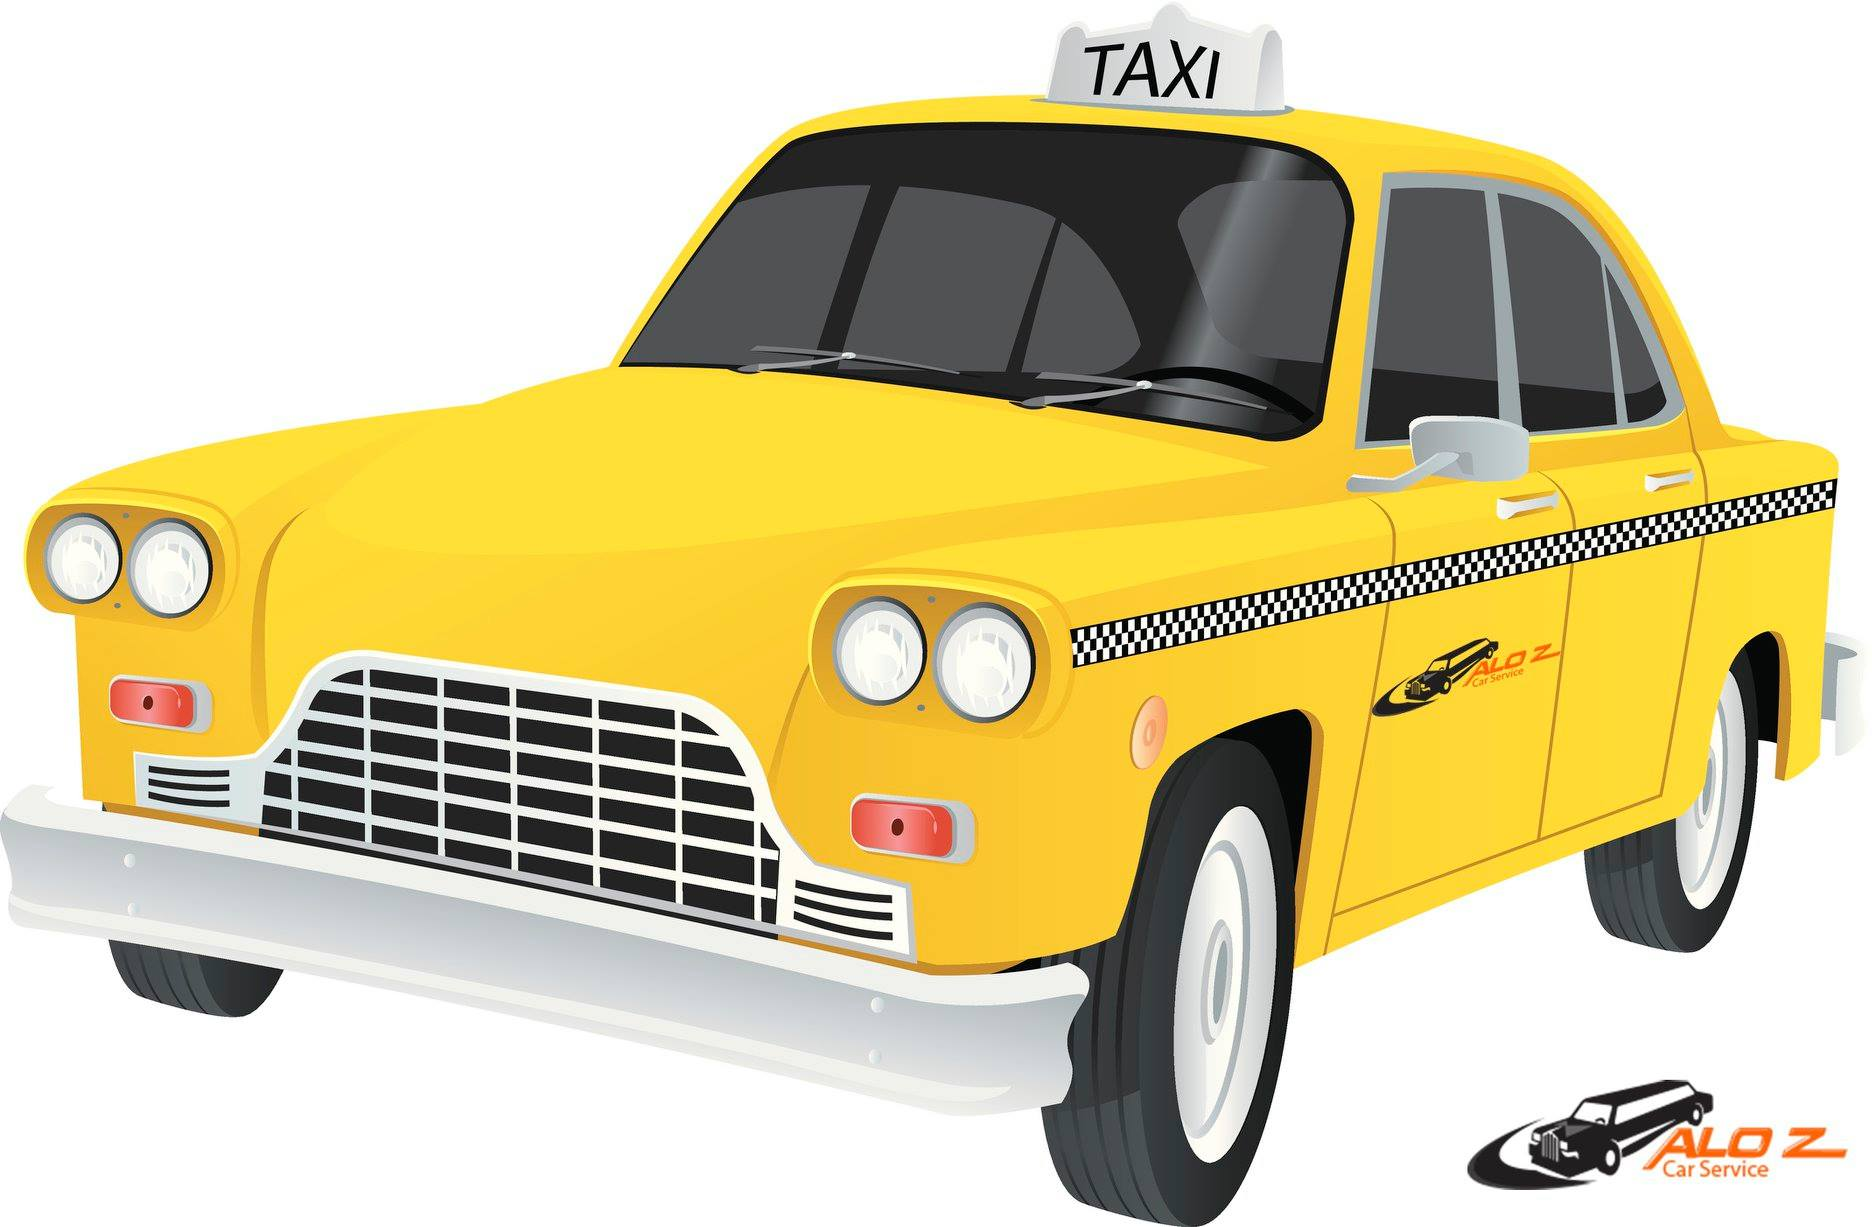 Hire Airport Taxi Limo Service (732-742-2252) & Local Taxi Limo Service New Jersey